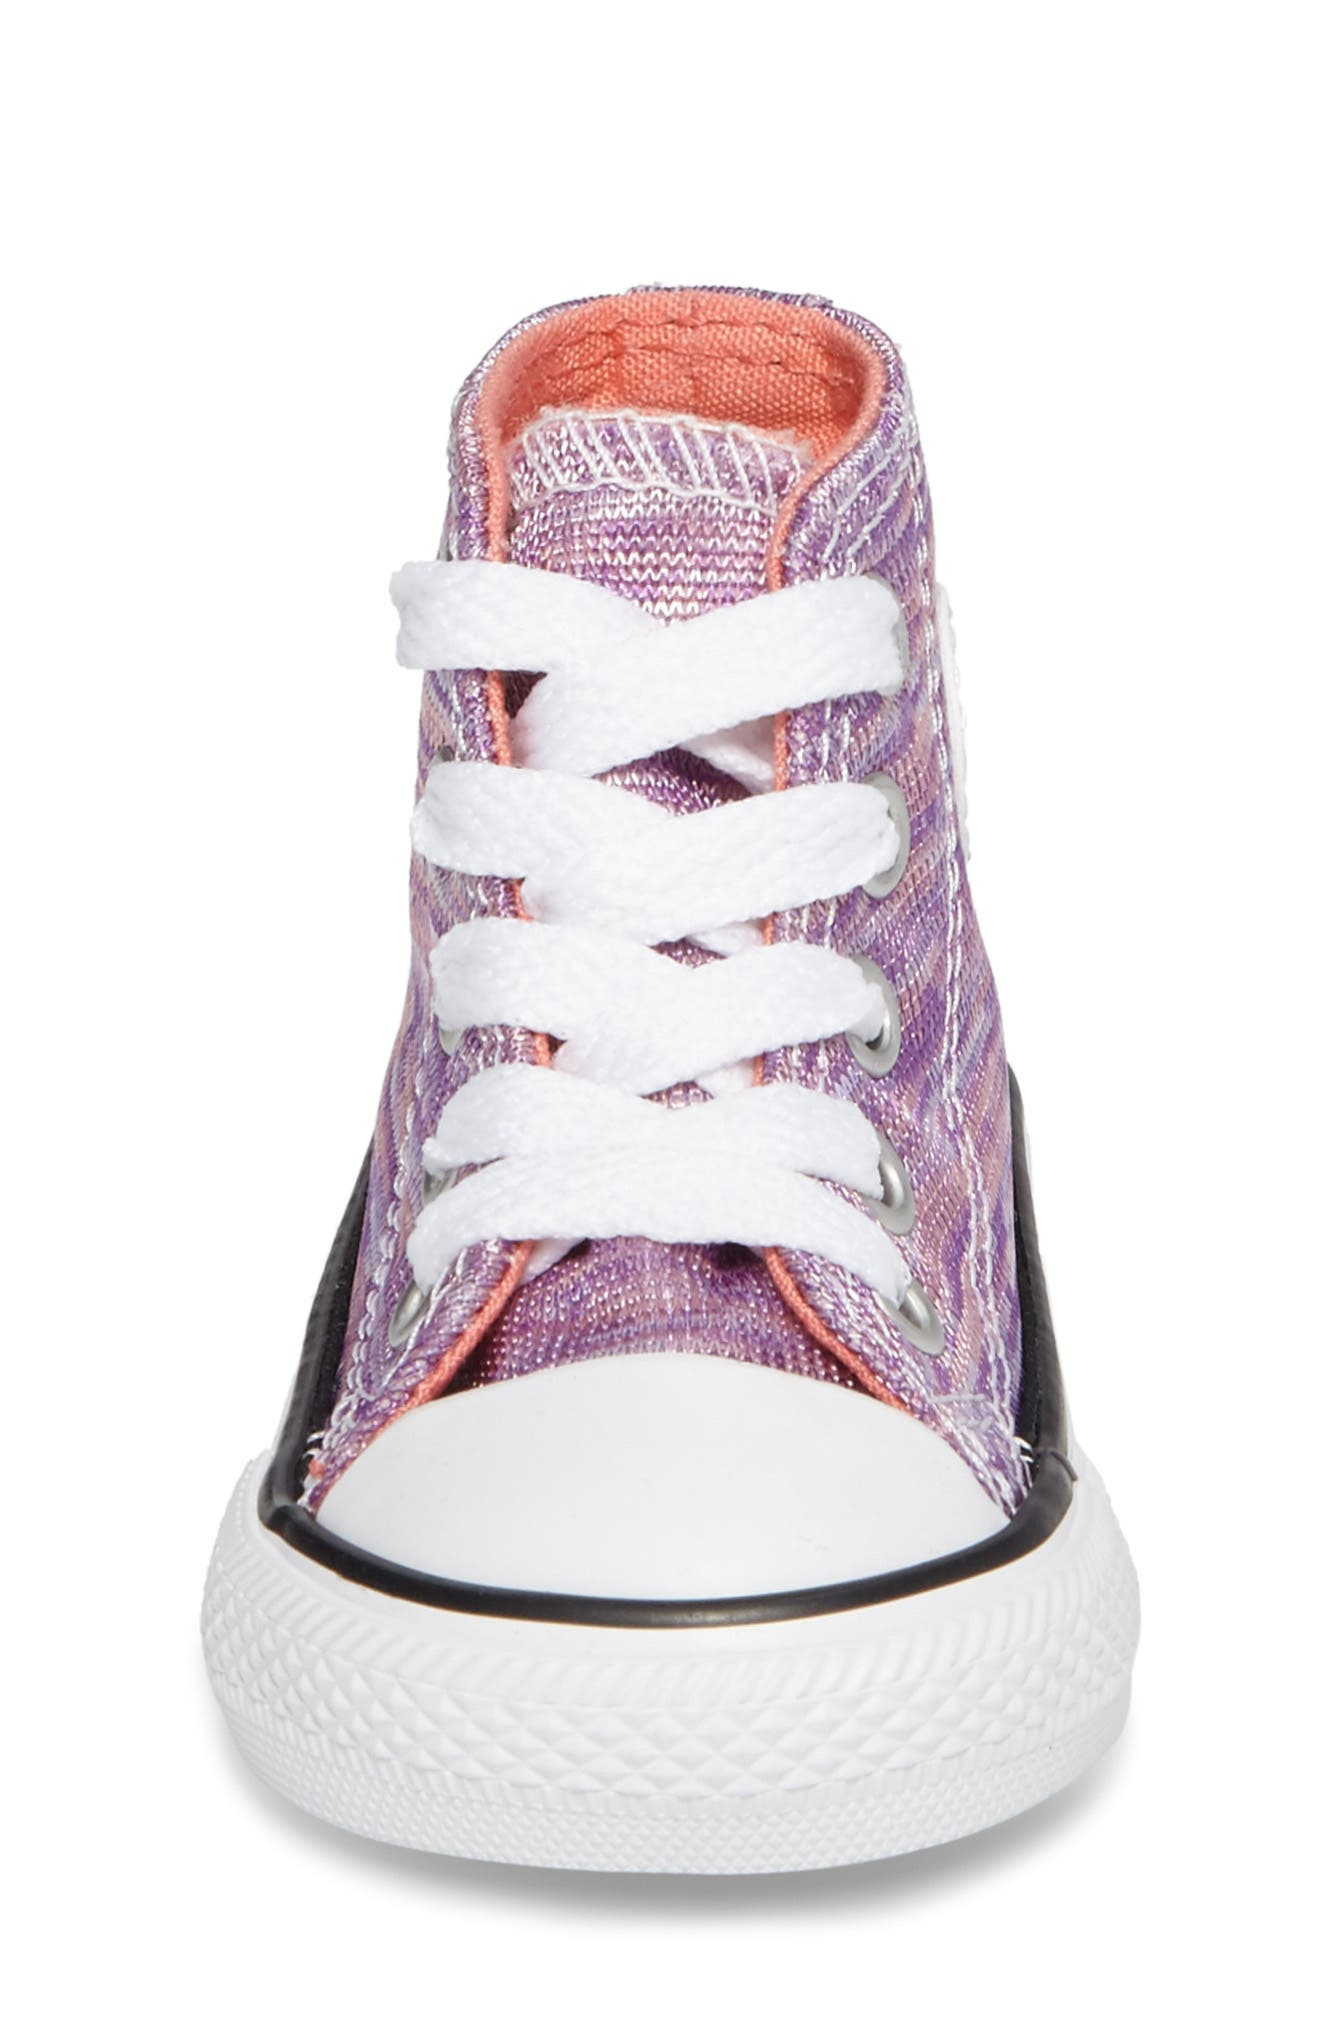 Chuck Taylor<sup>®</sup> All Star<sup>®</sup> Knit High Top Sneaker,                             Alternate thumbnail 4, color,                             504